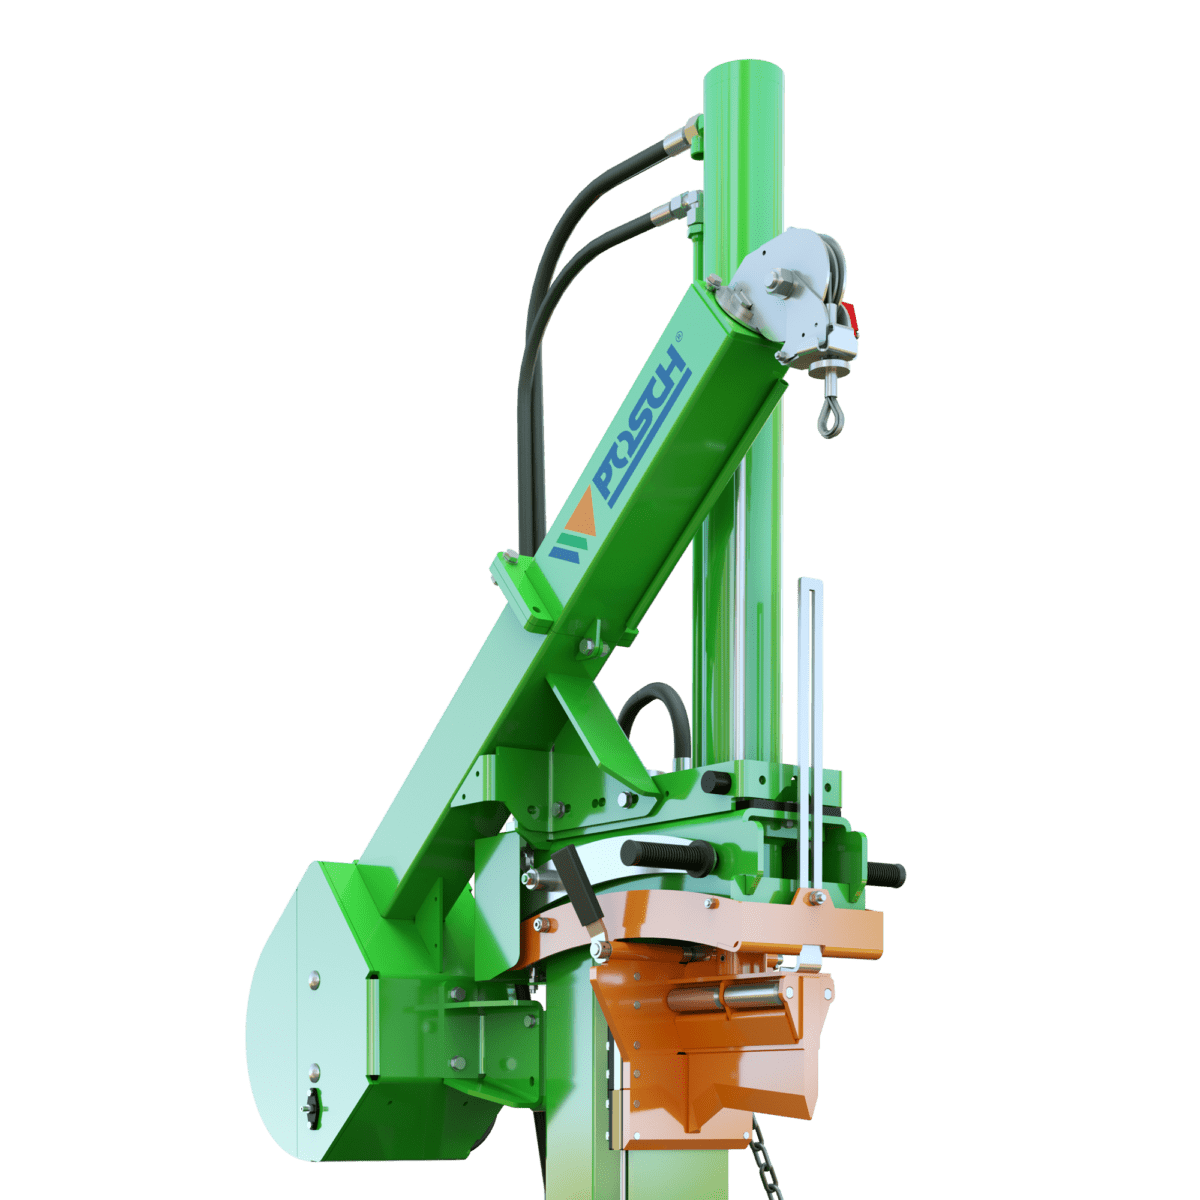 Posch rope winch for wood splitter, pulling force 1000 kg